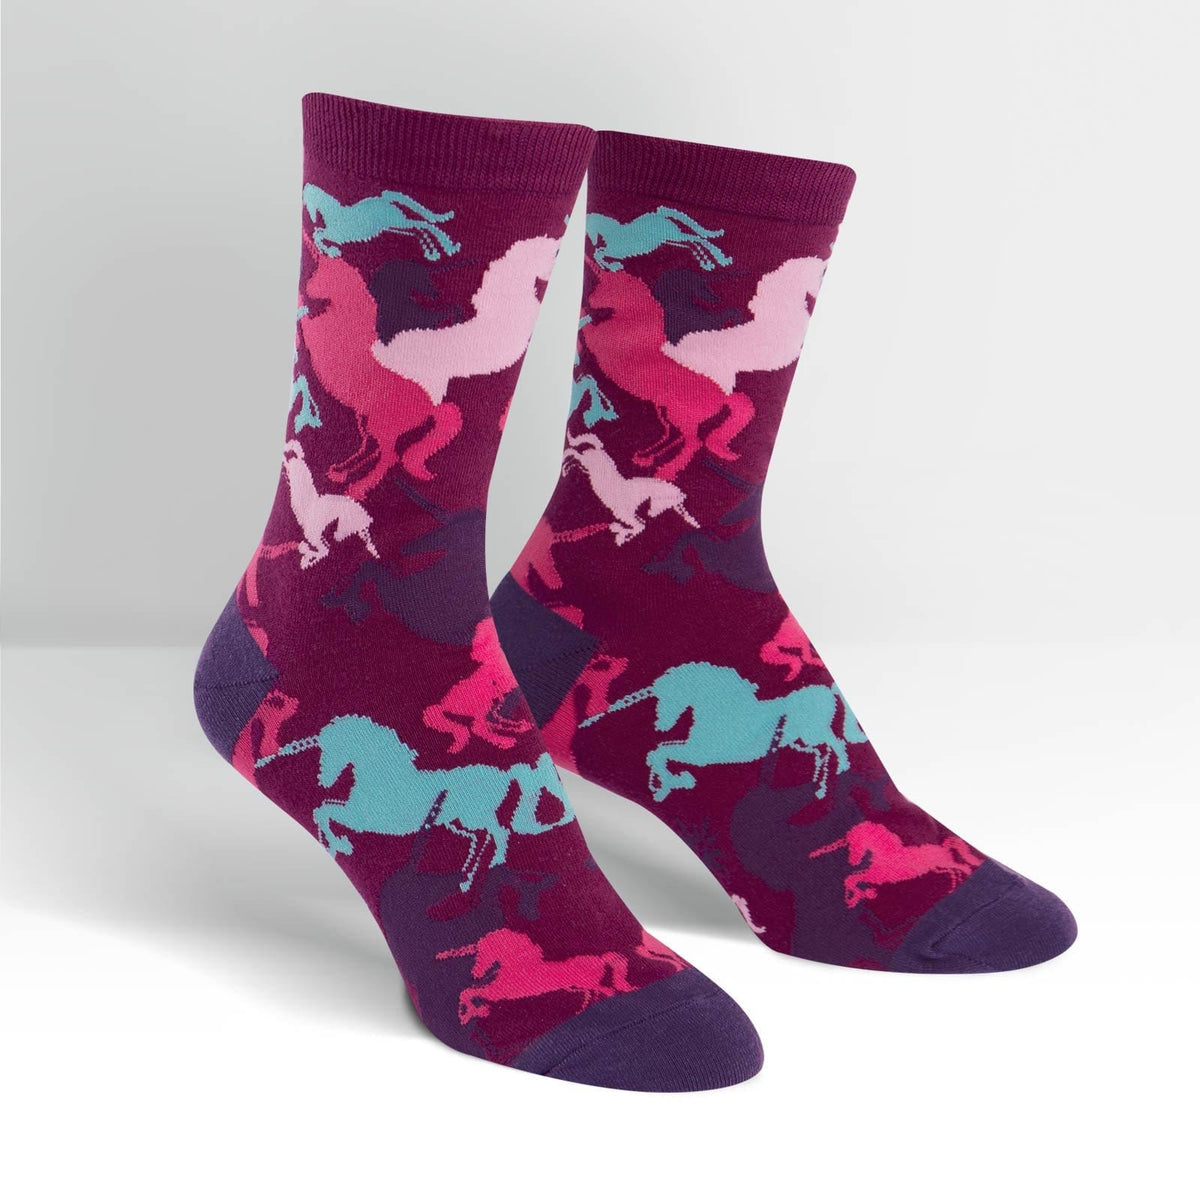 Mythical Unicorn Socks Women's Crew Sock